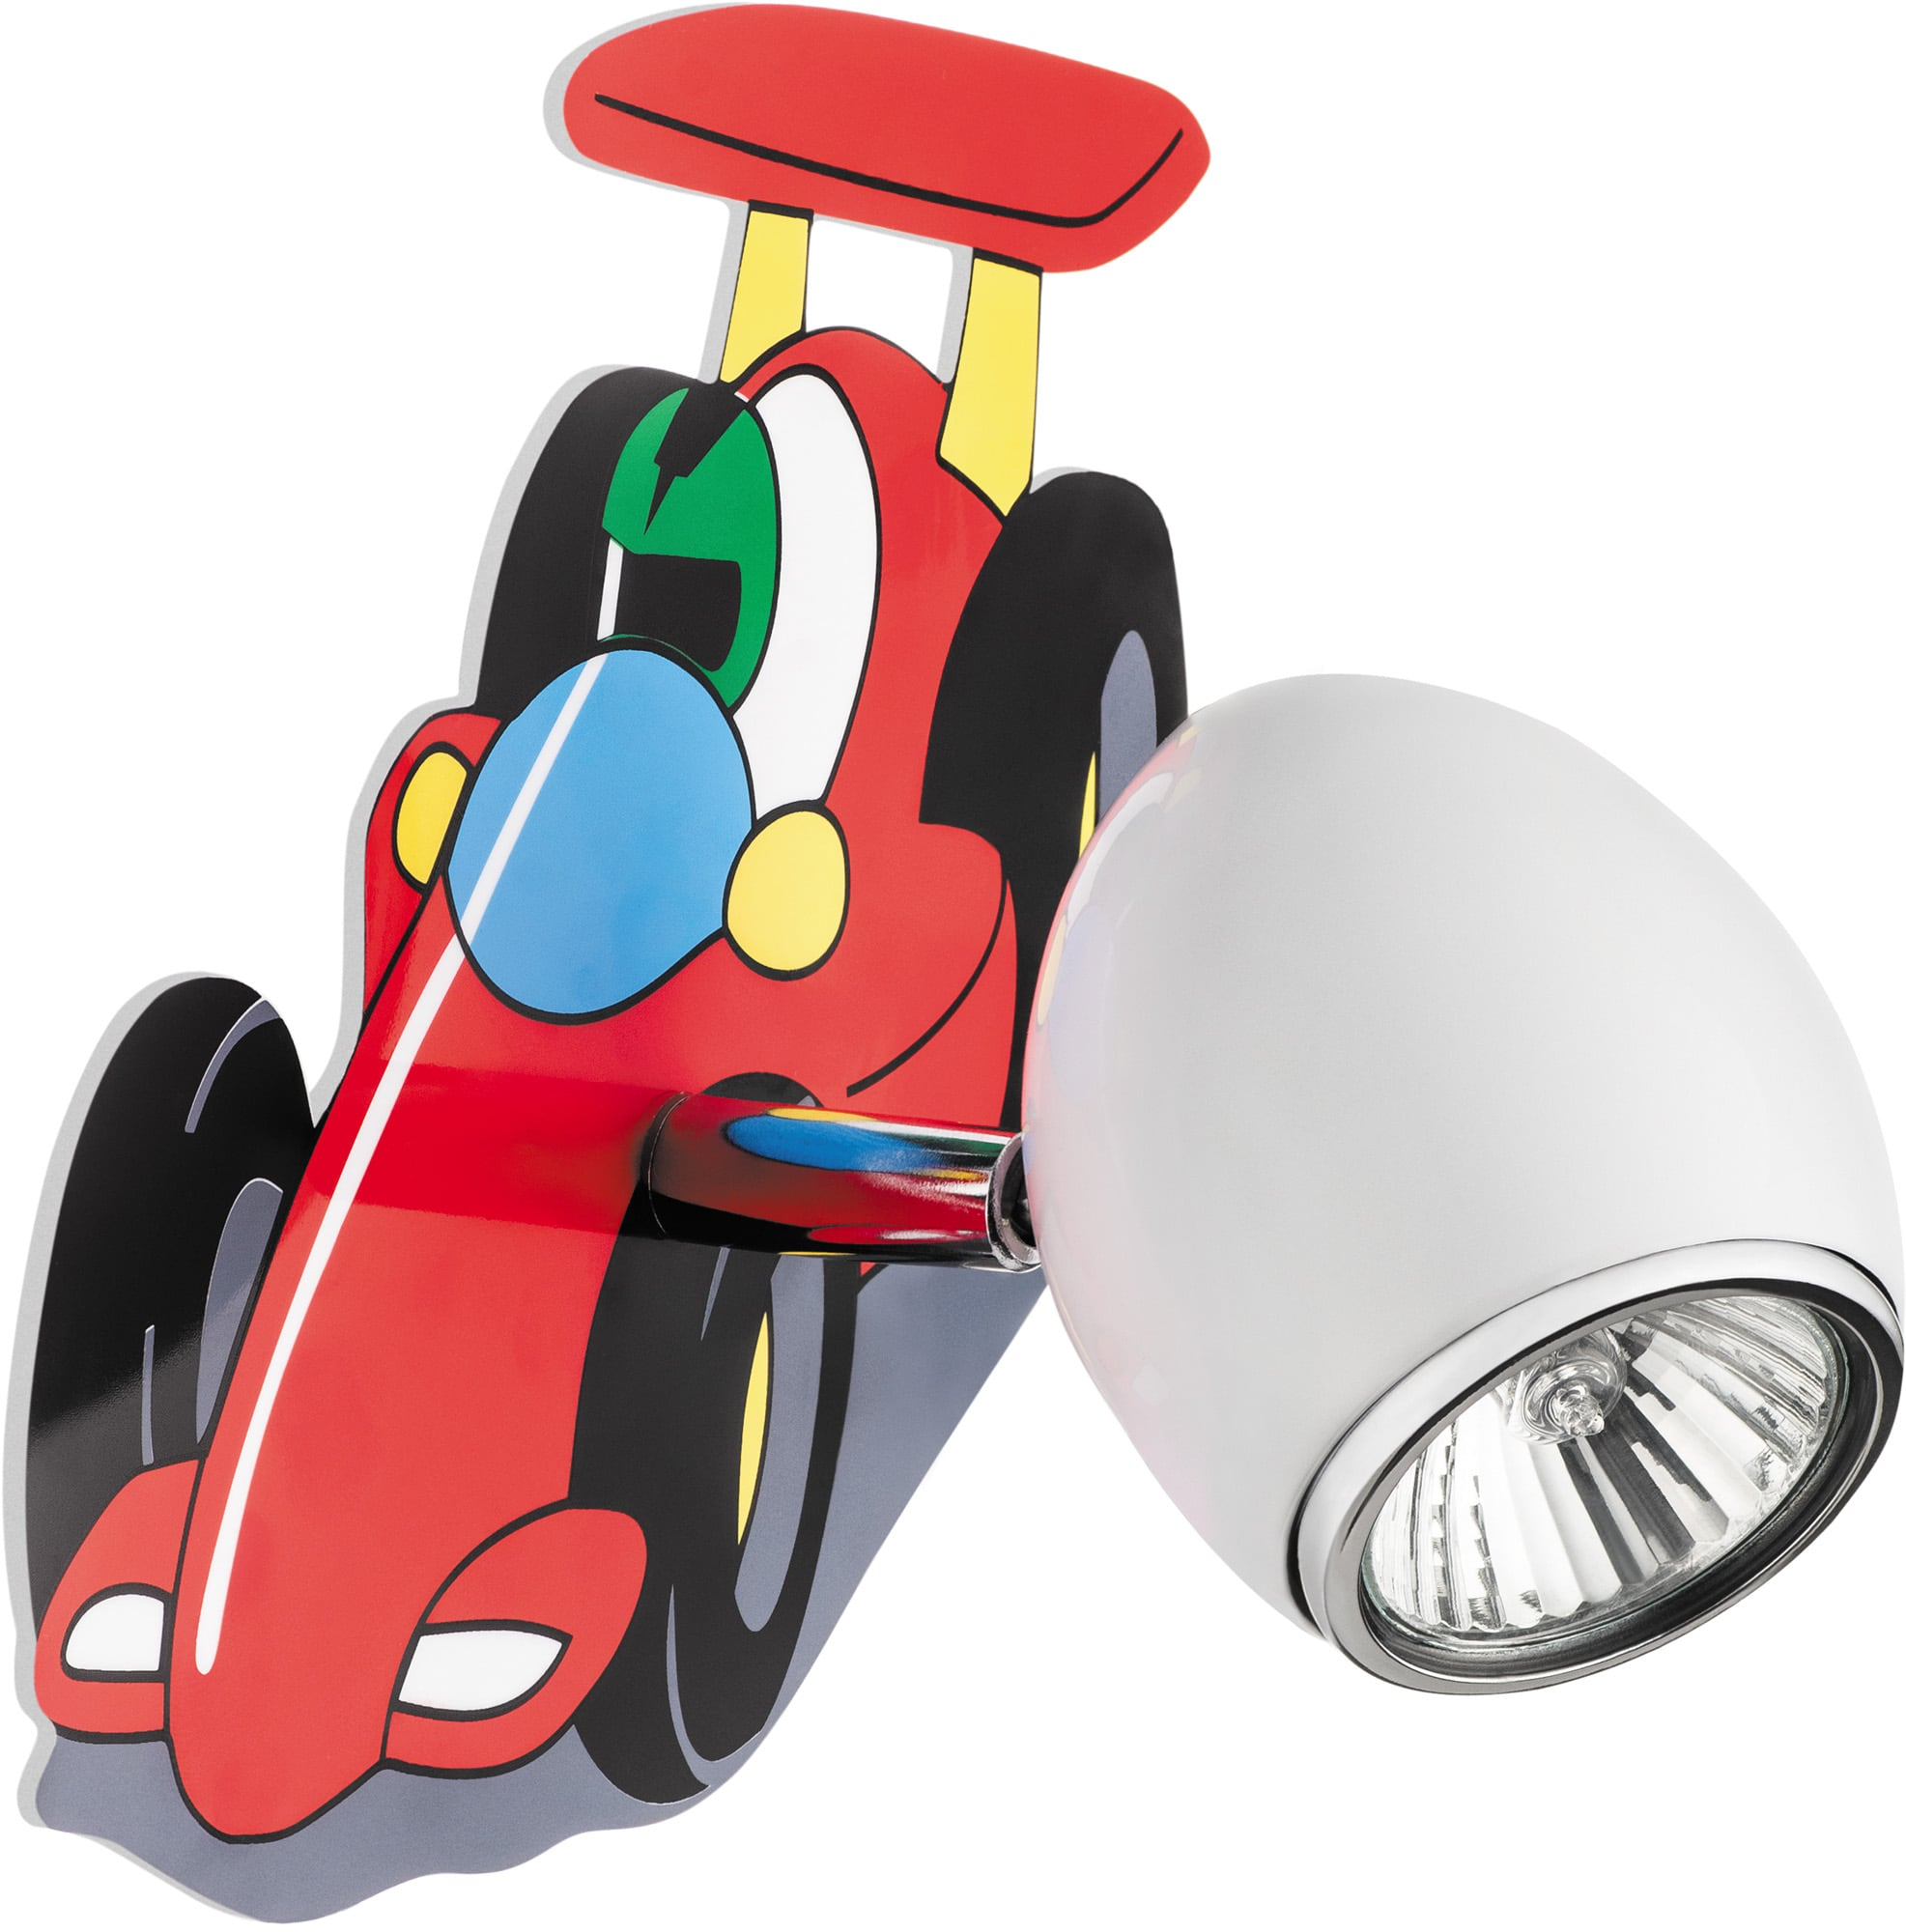 Wall lamp for a child Car race car - Car white / chrome 50W GU10